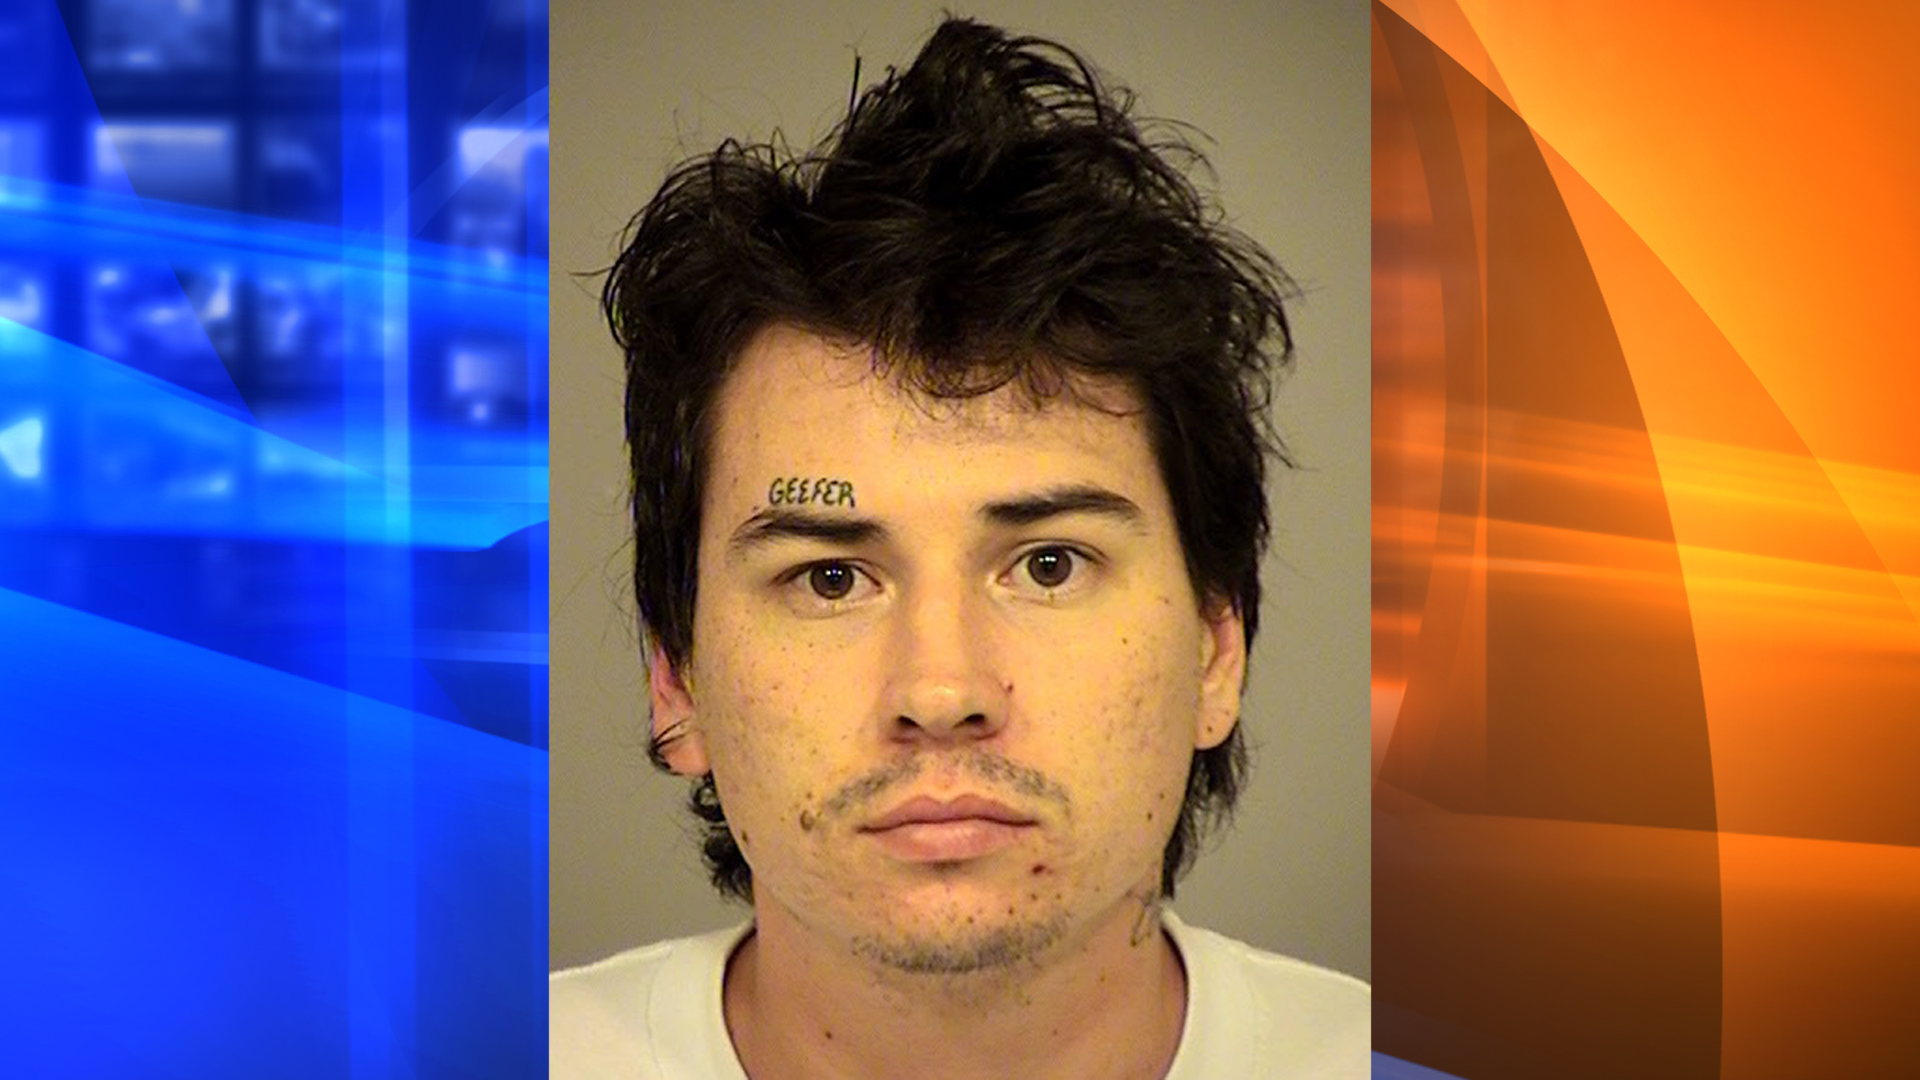 Daniel Vincent Vigil, 29, is seen in a photo released by the Ventura County Sheriff's Office on May 22, 2019.